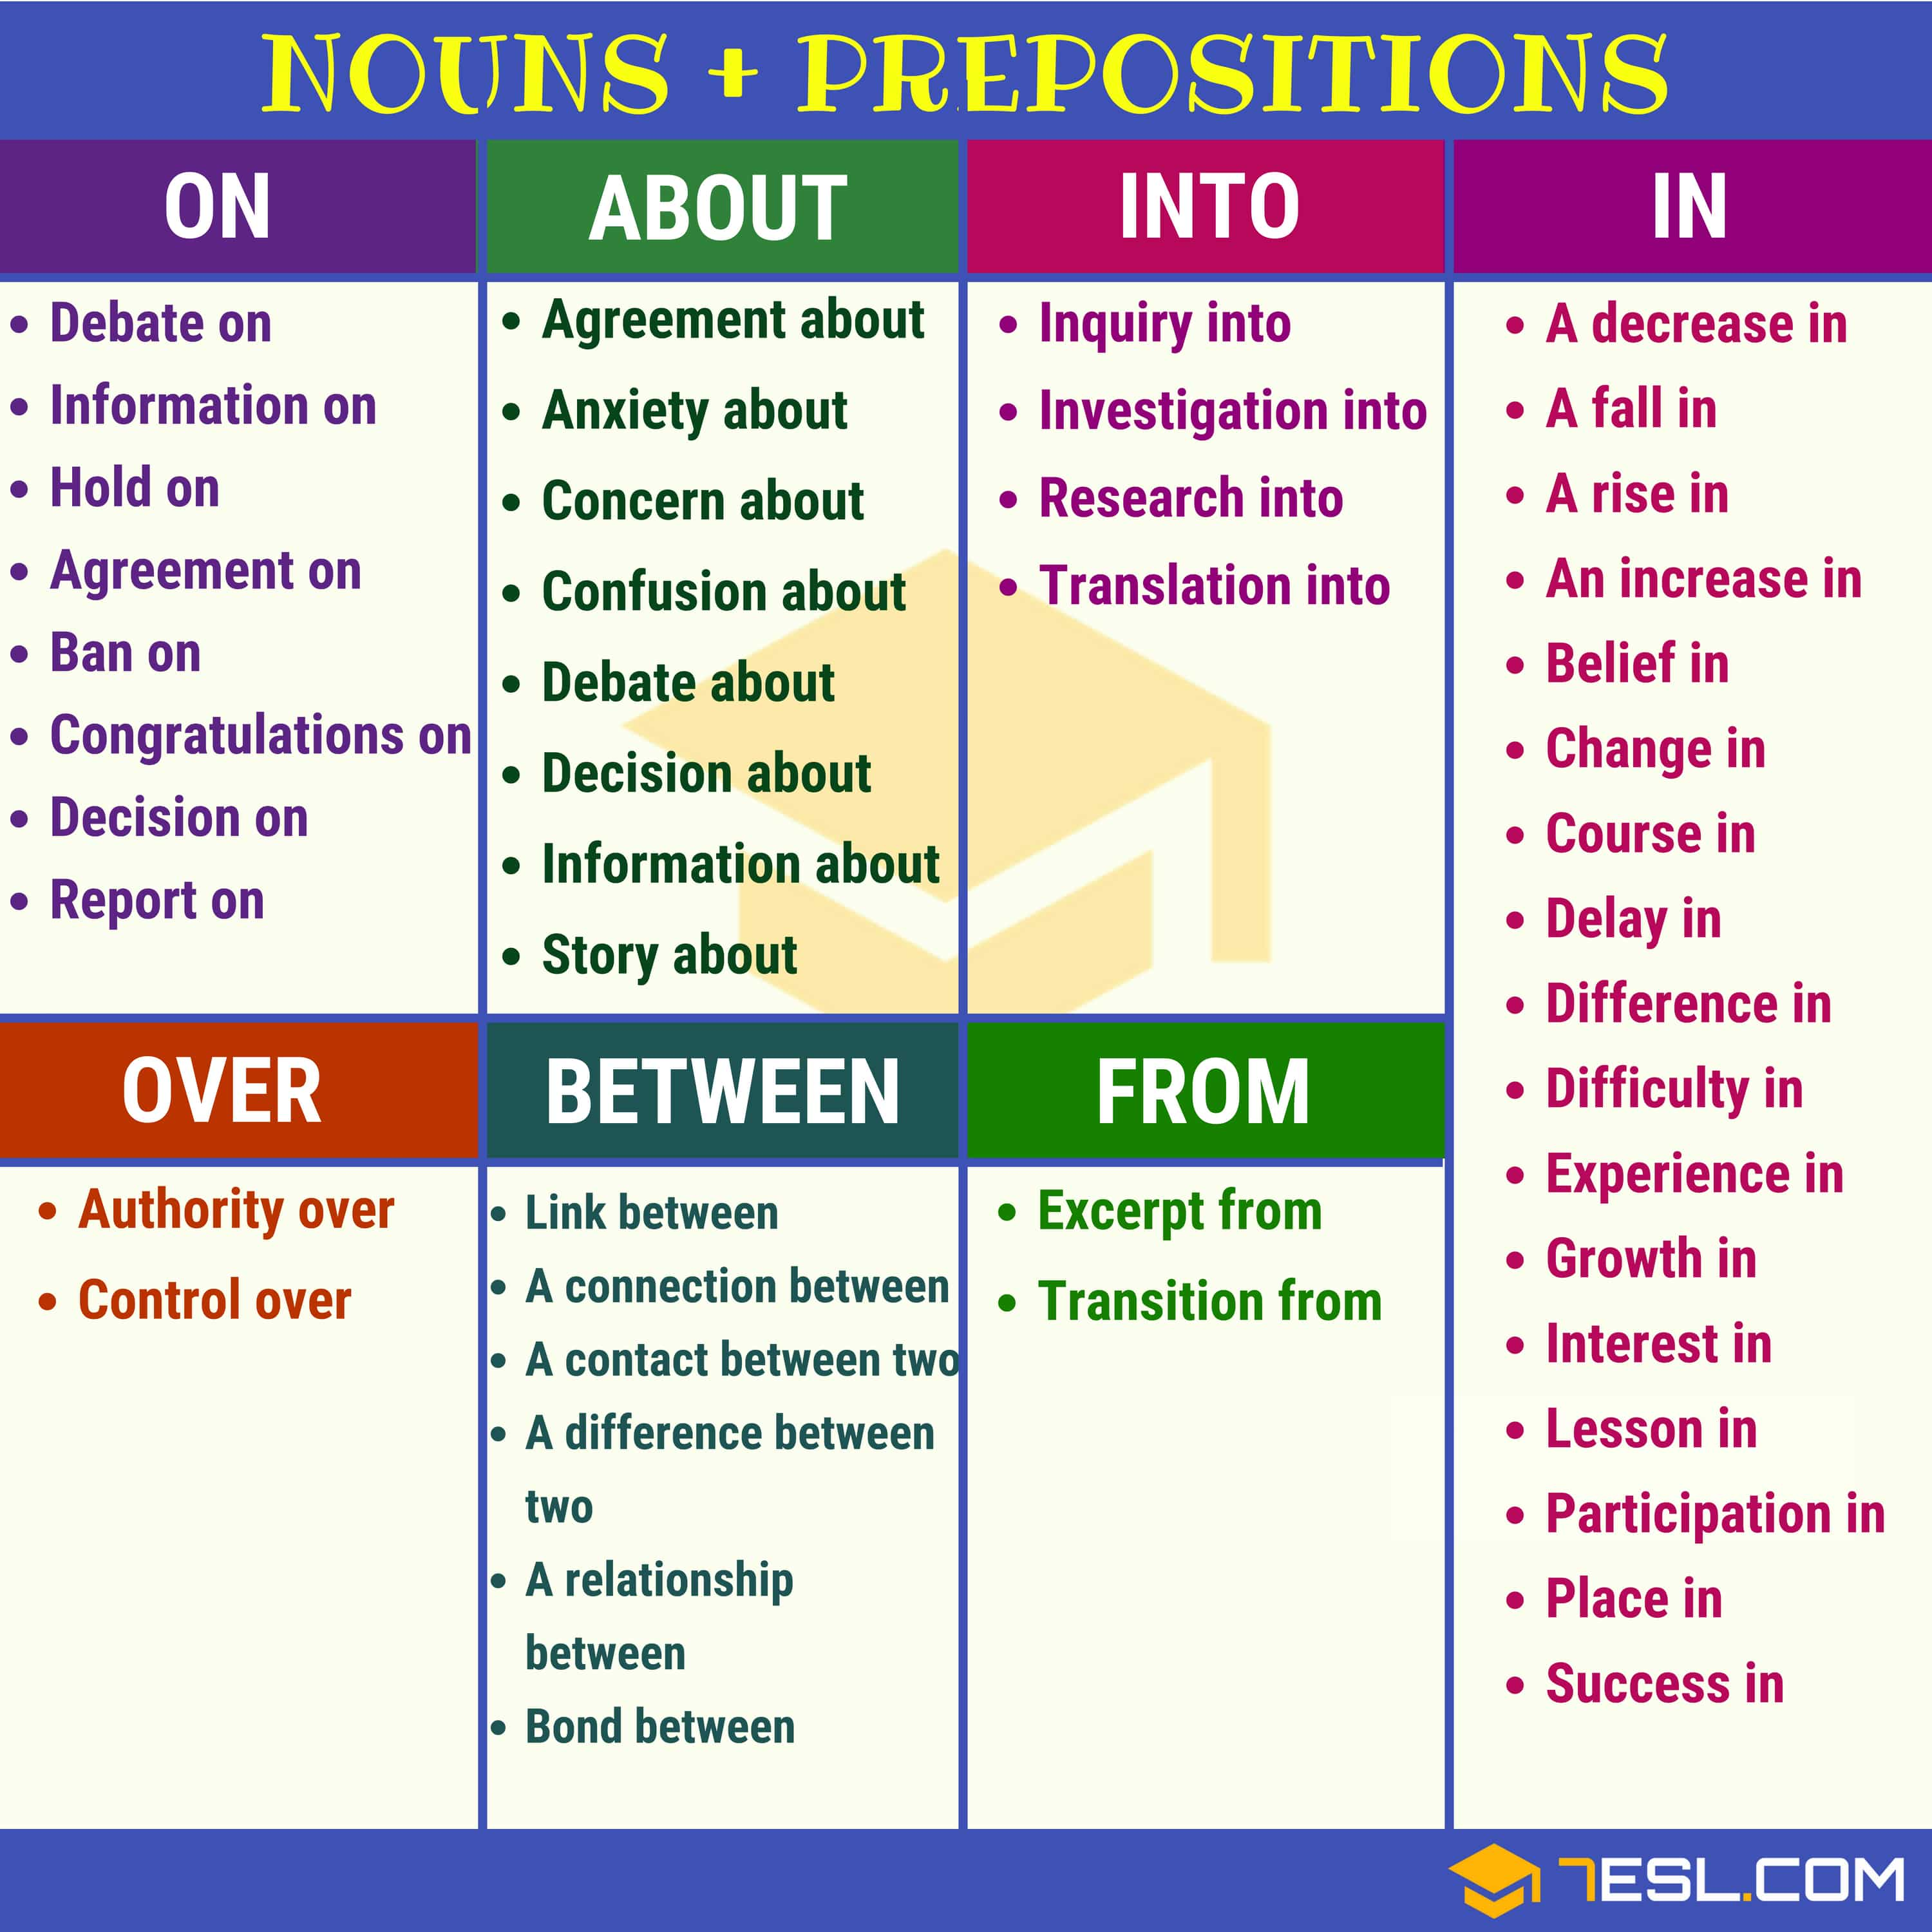 120 Useful Noun Preposition Collocations In English